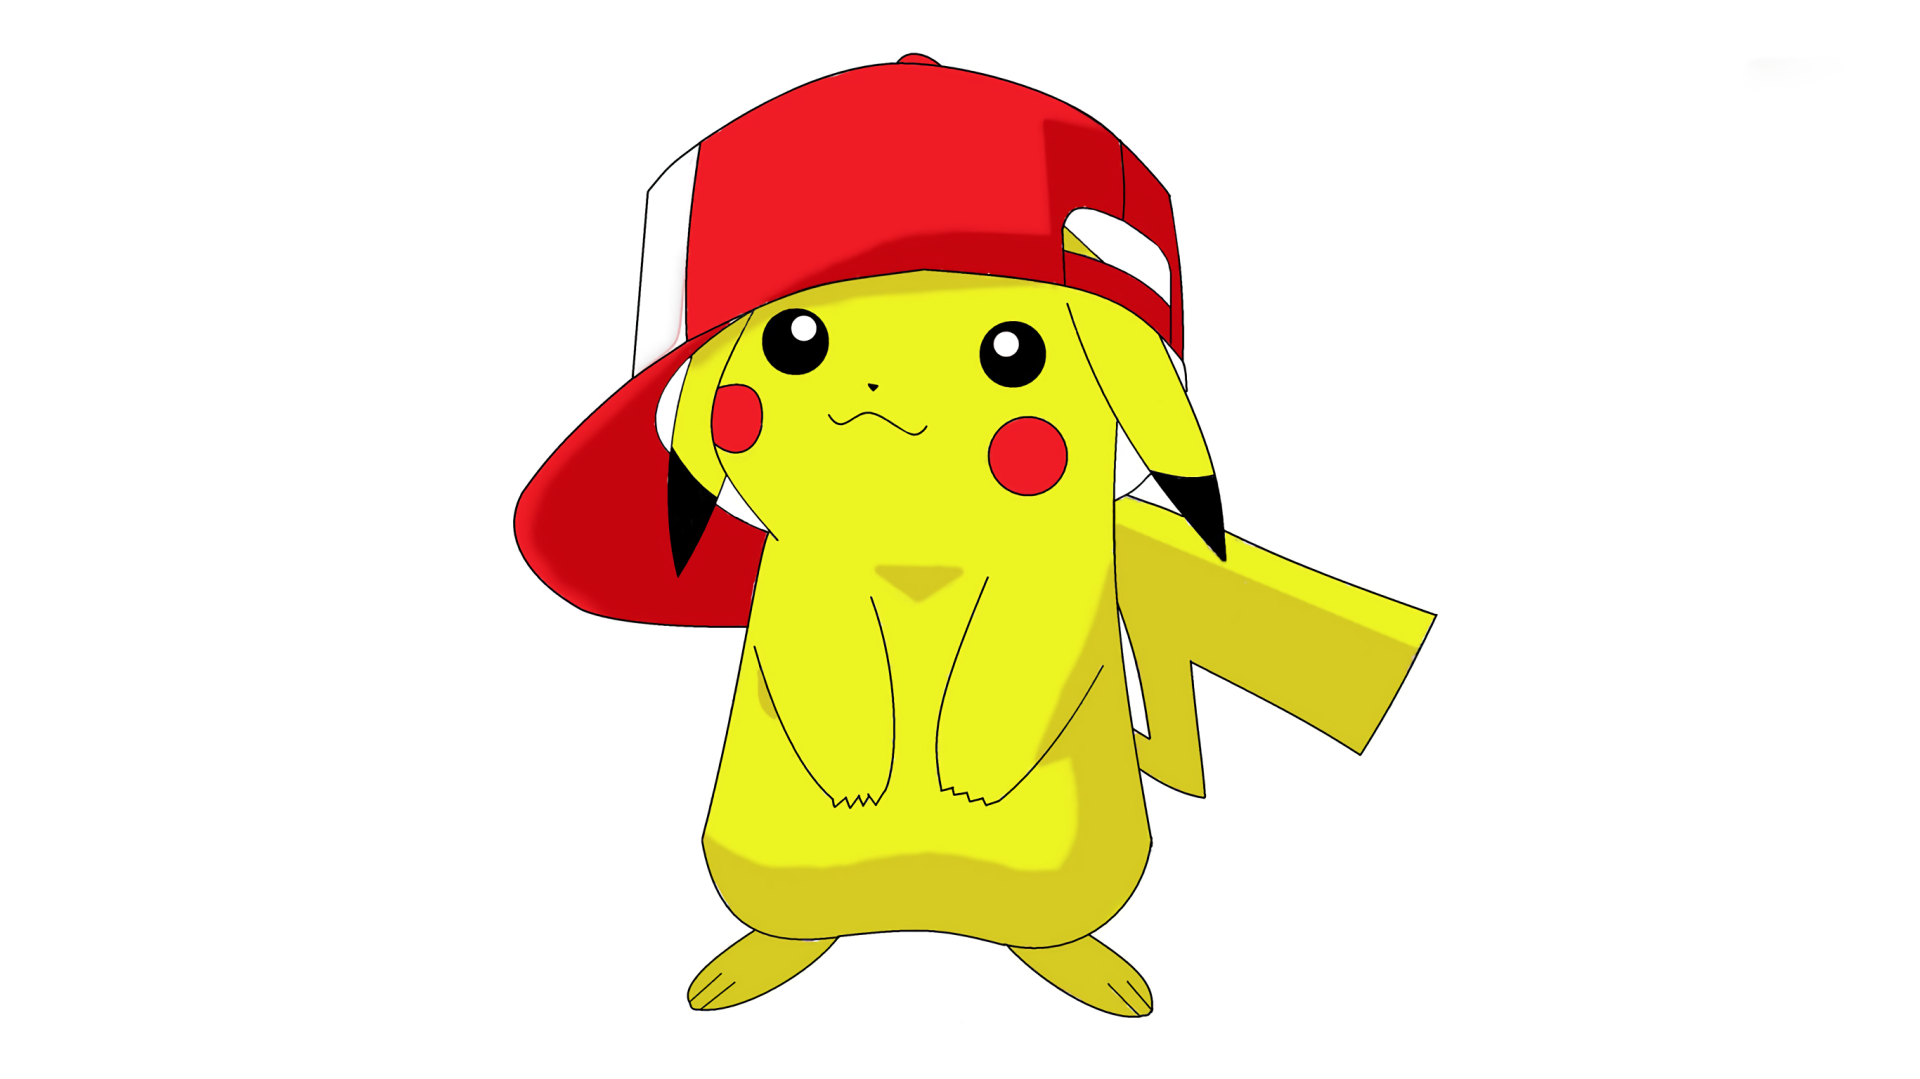 Anime - Pokémon  Pikachu Anime Video Game Wallpaper